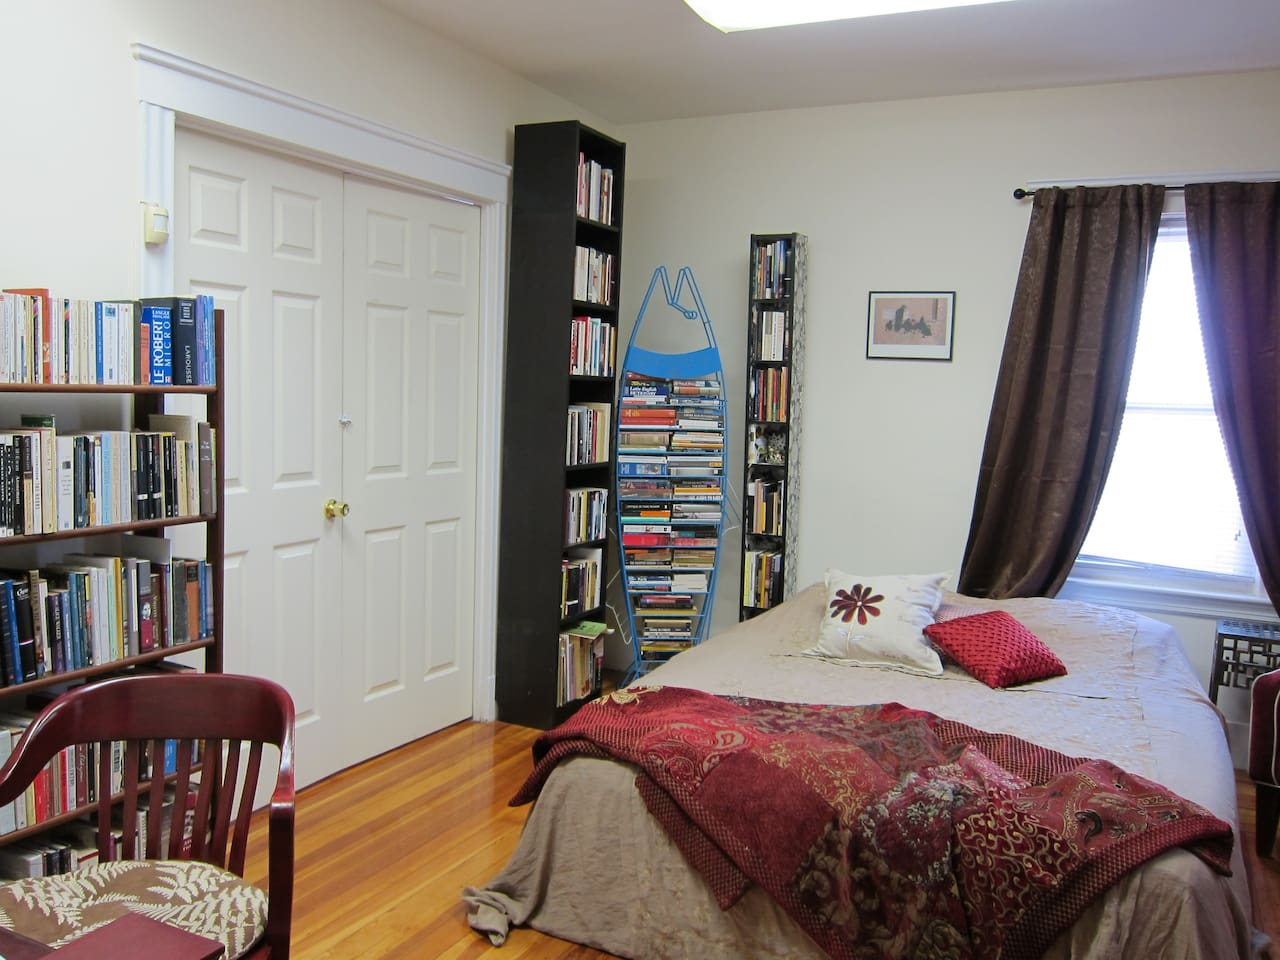 Spacious, sunny guest room. Also: some books.